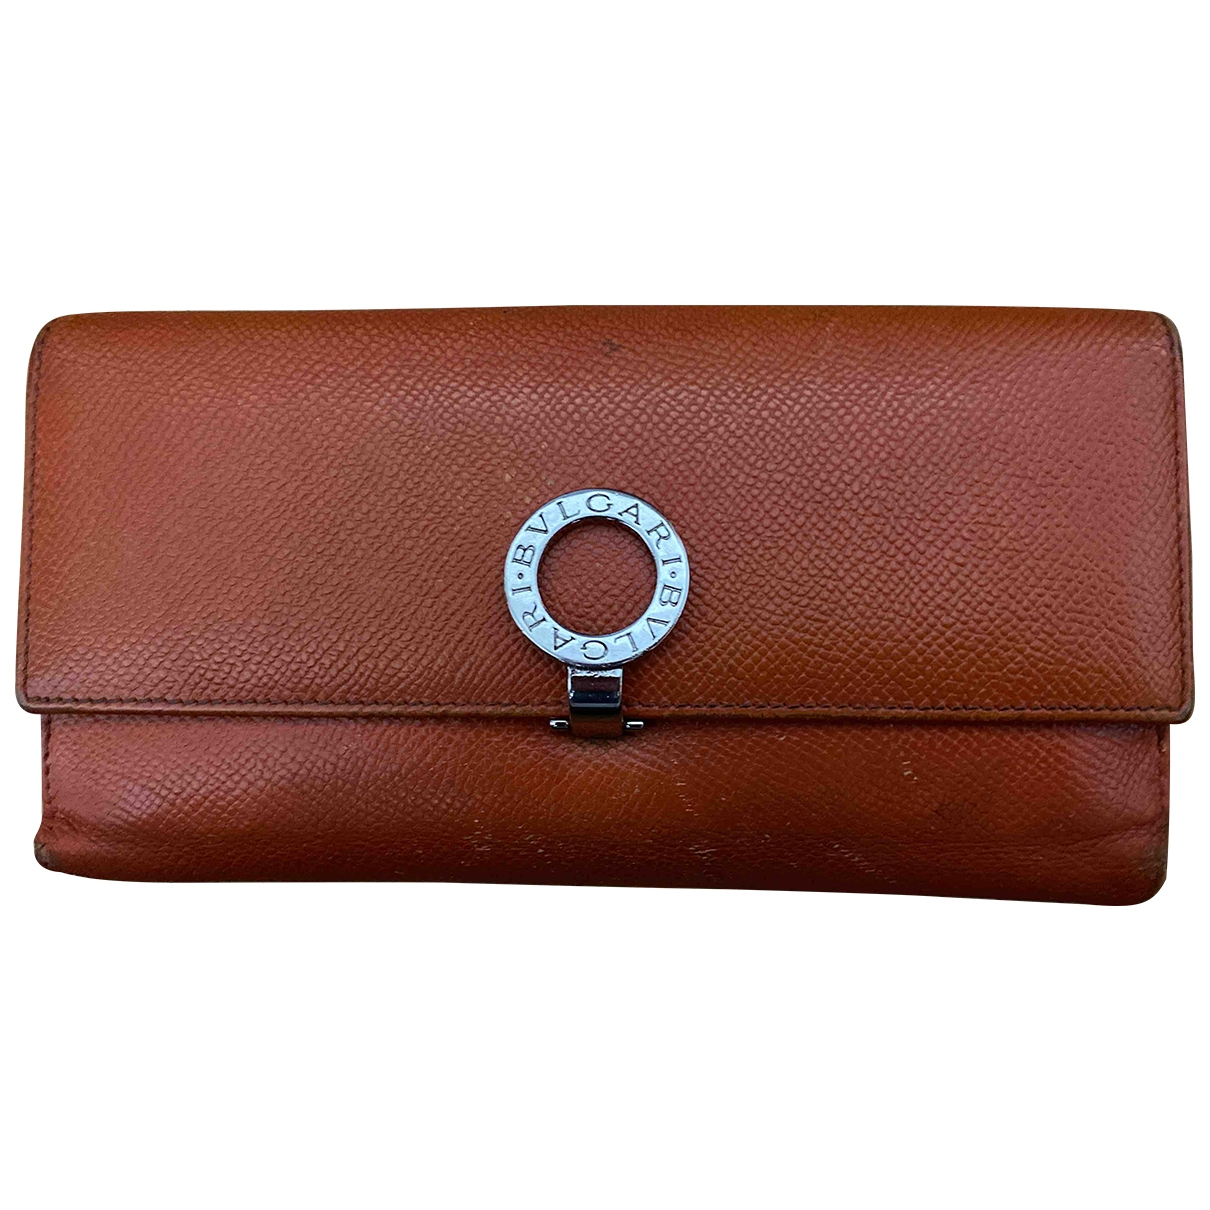 Bvlgari \N Portemonnaie in  Orange Leder